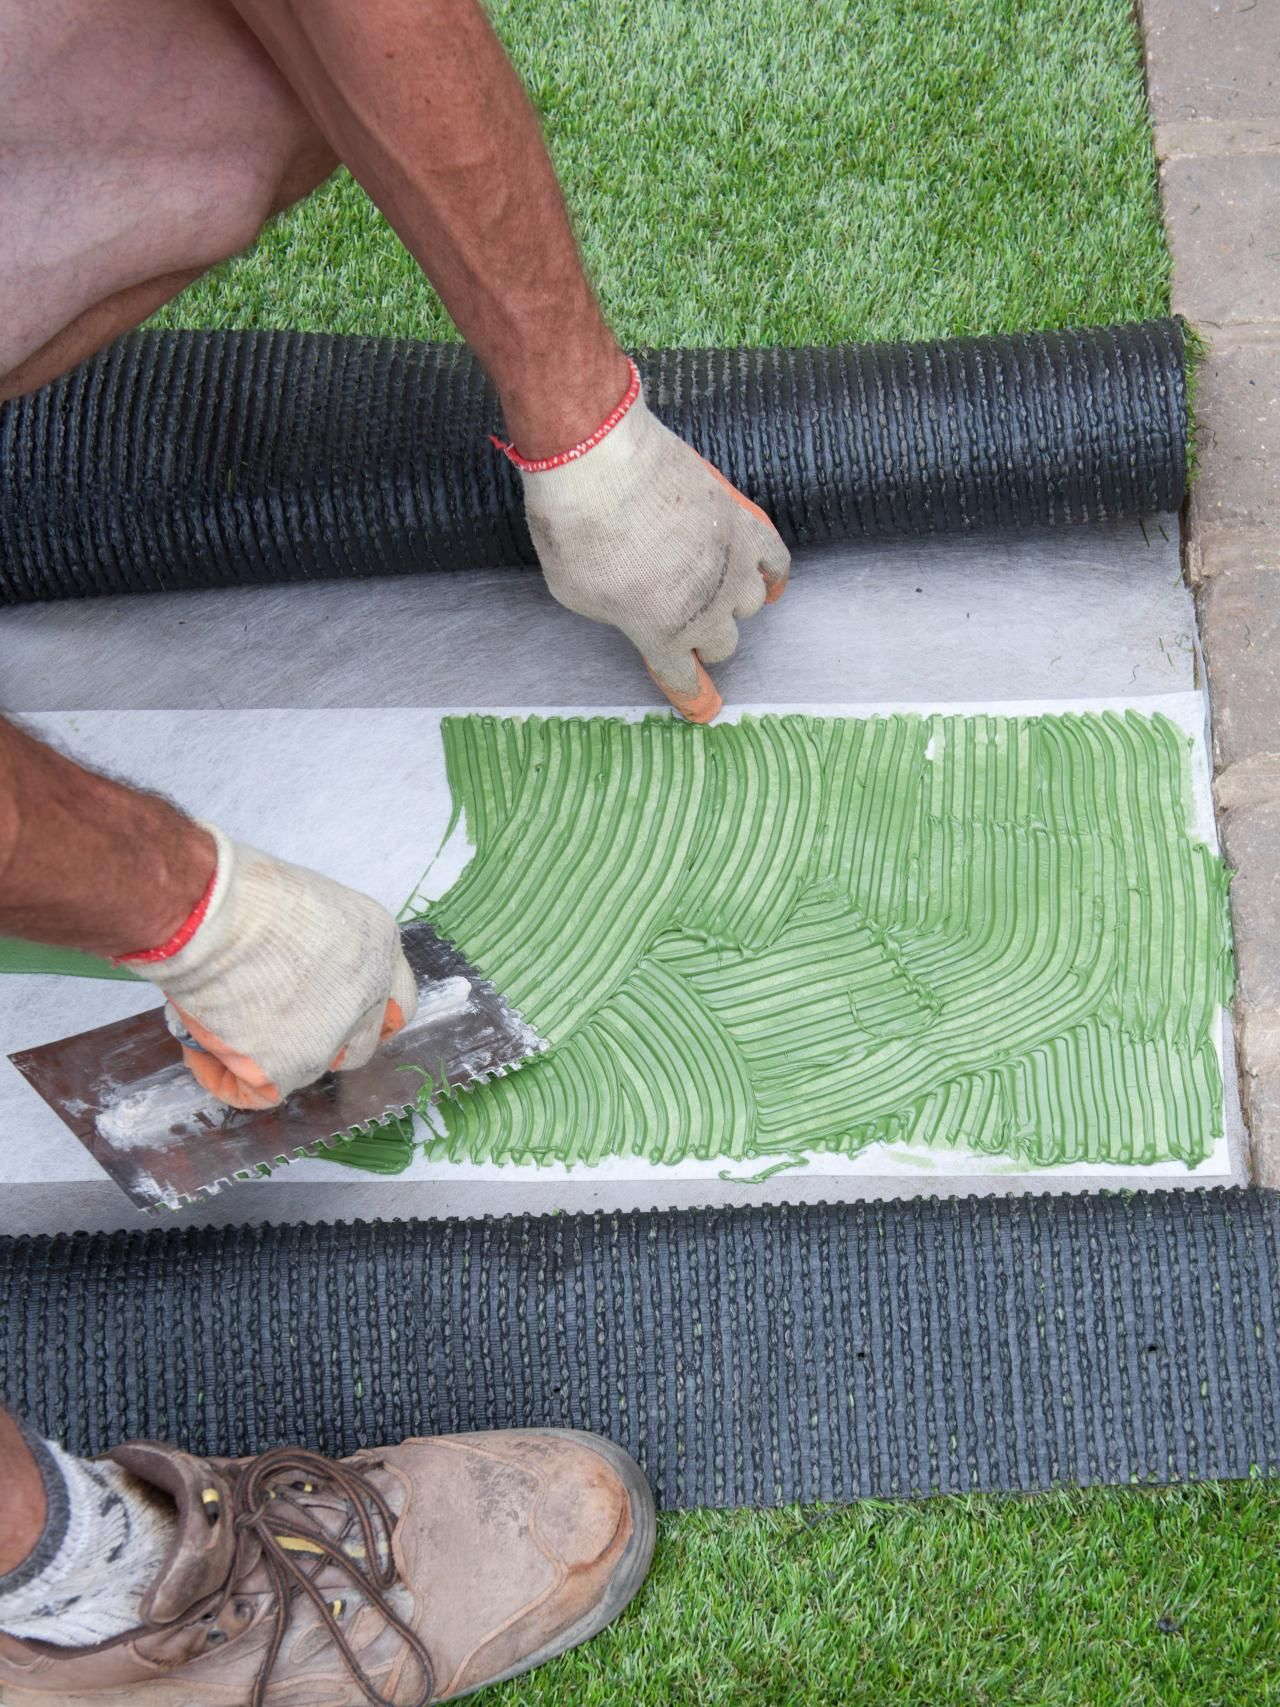 How to Lay Artificial Turf Artificial turf, Turf